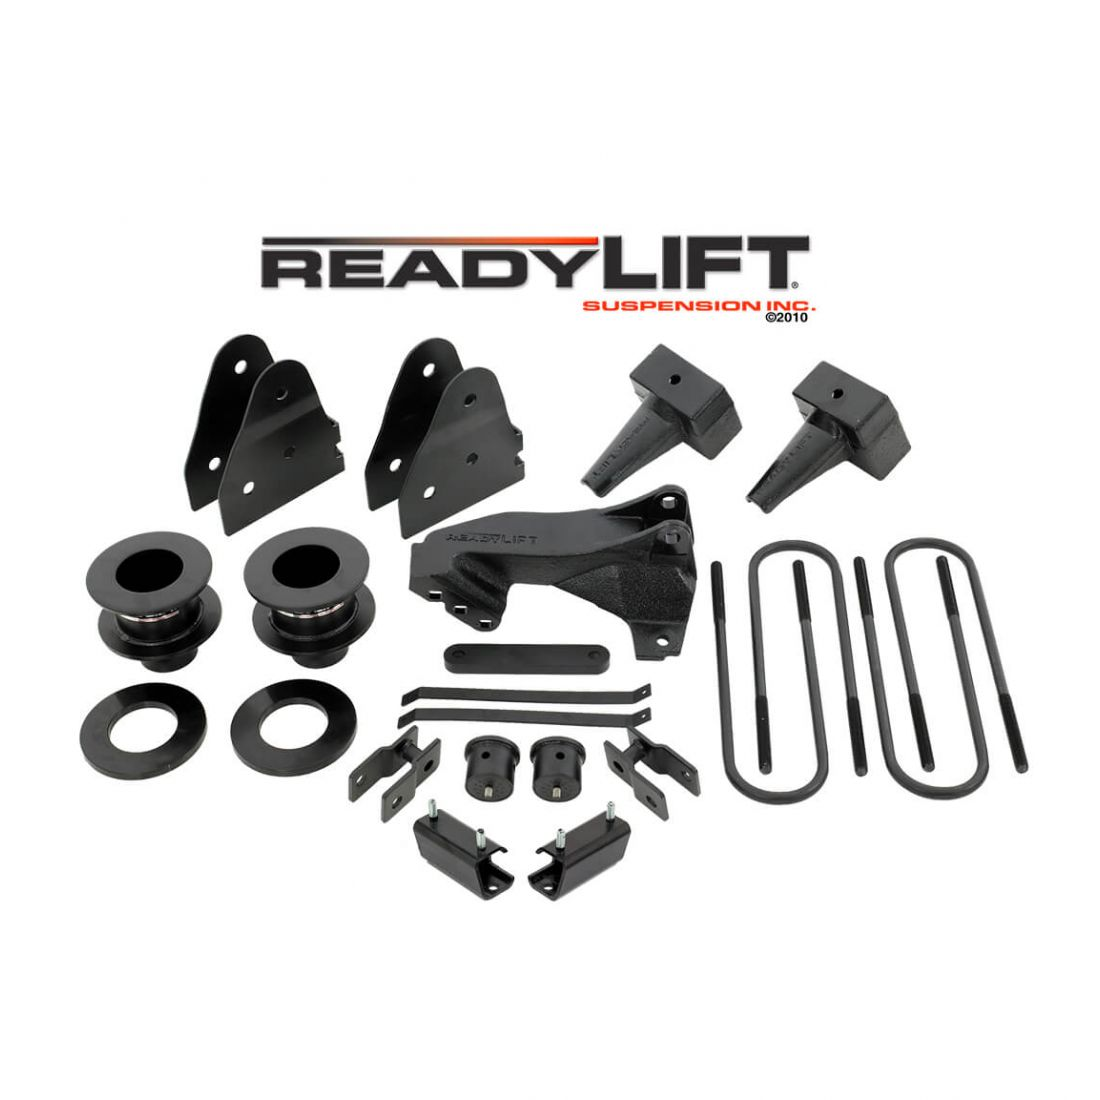 2 Piece Drive Shaft For F250//F350 Ford ReadyLift 69-2519 2.5 SST Lift Kit With 4 Rear Blocks